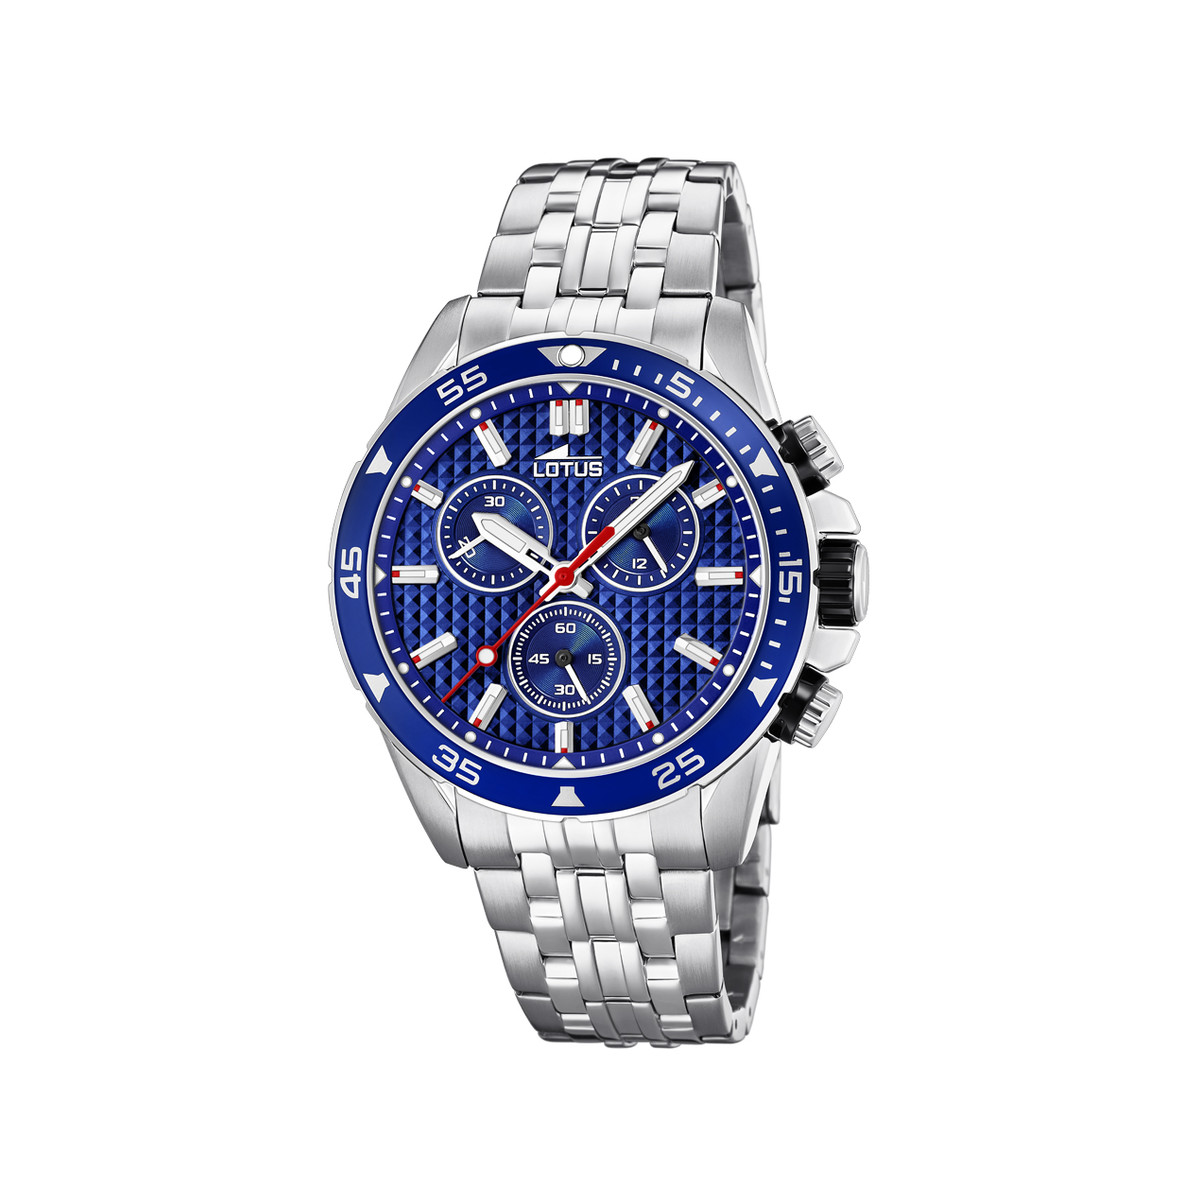 Montre LOTUS EXCELLENCE Bracelet Acier inoxydable